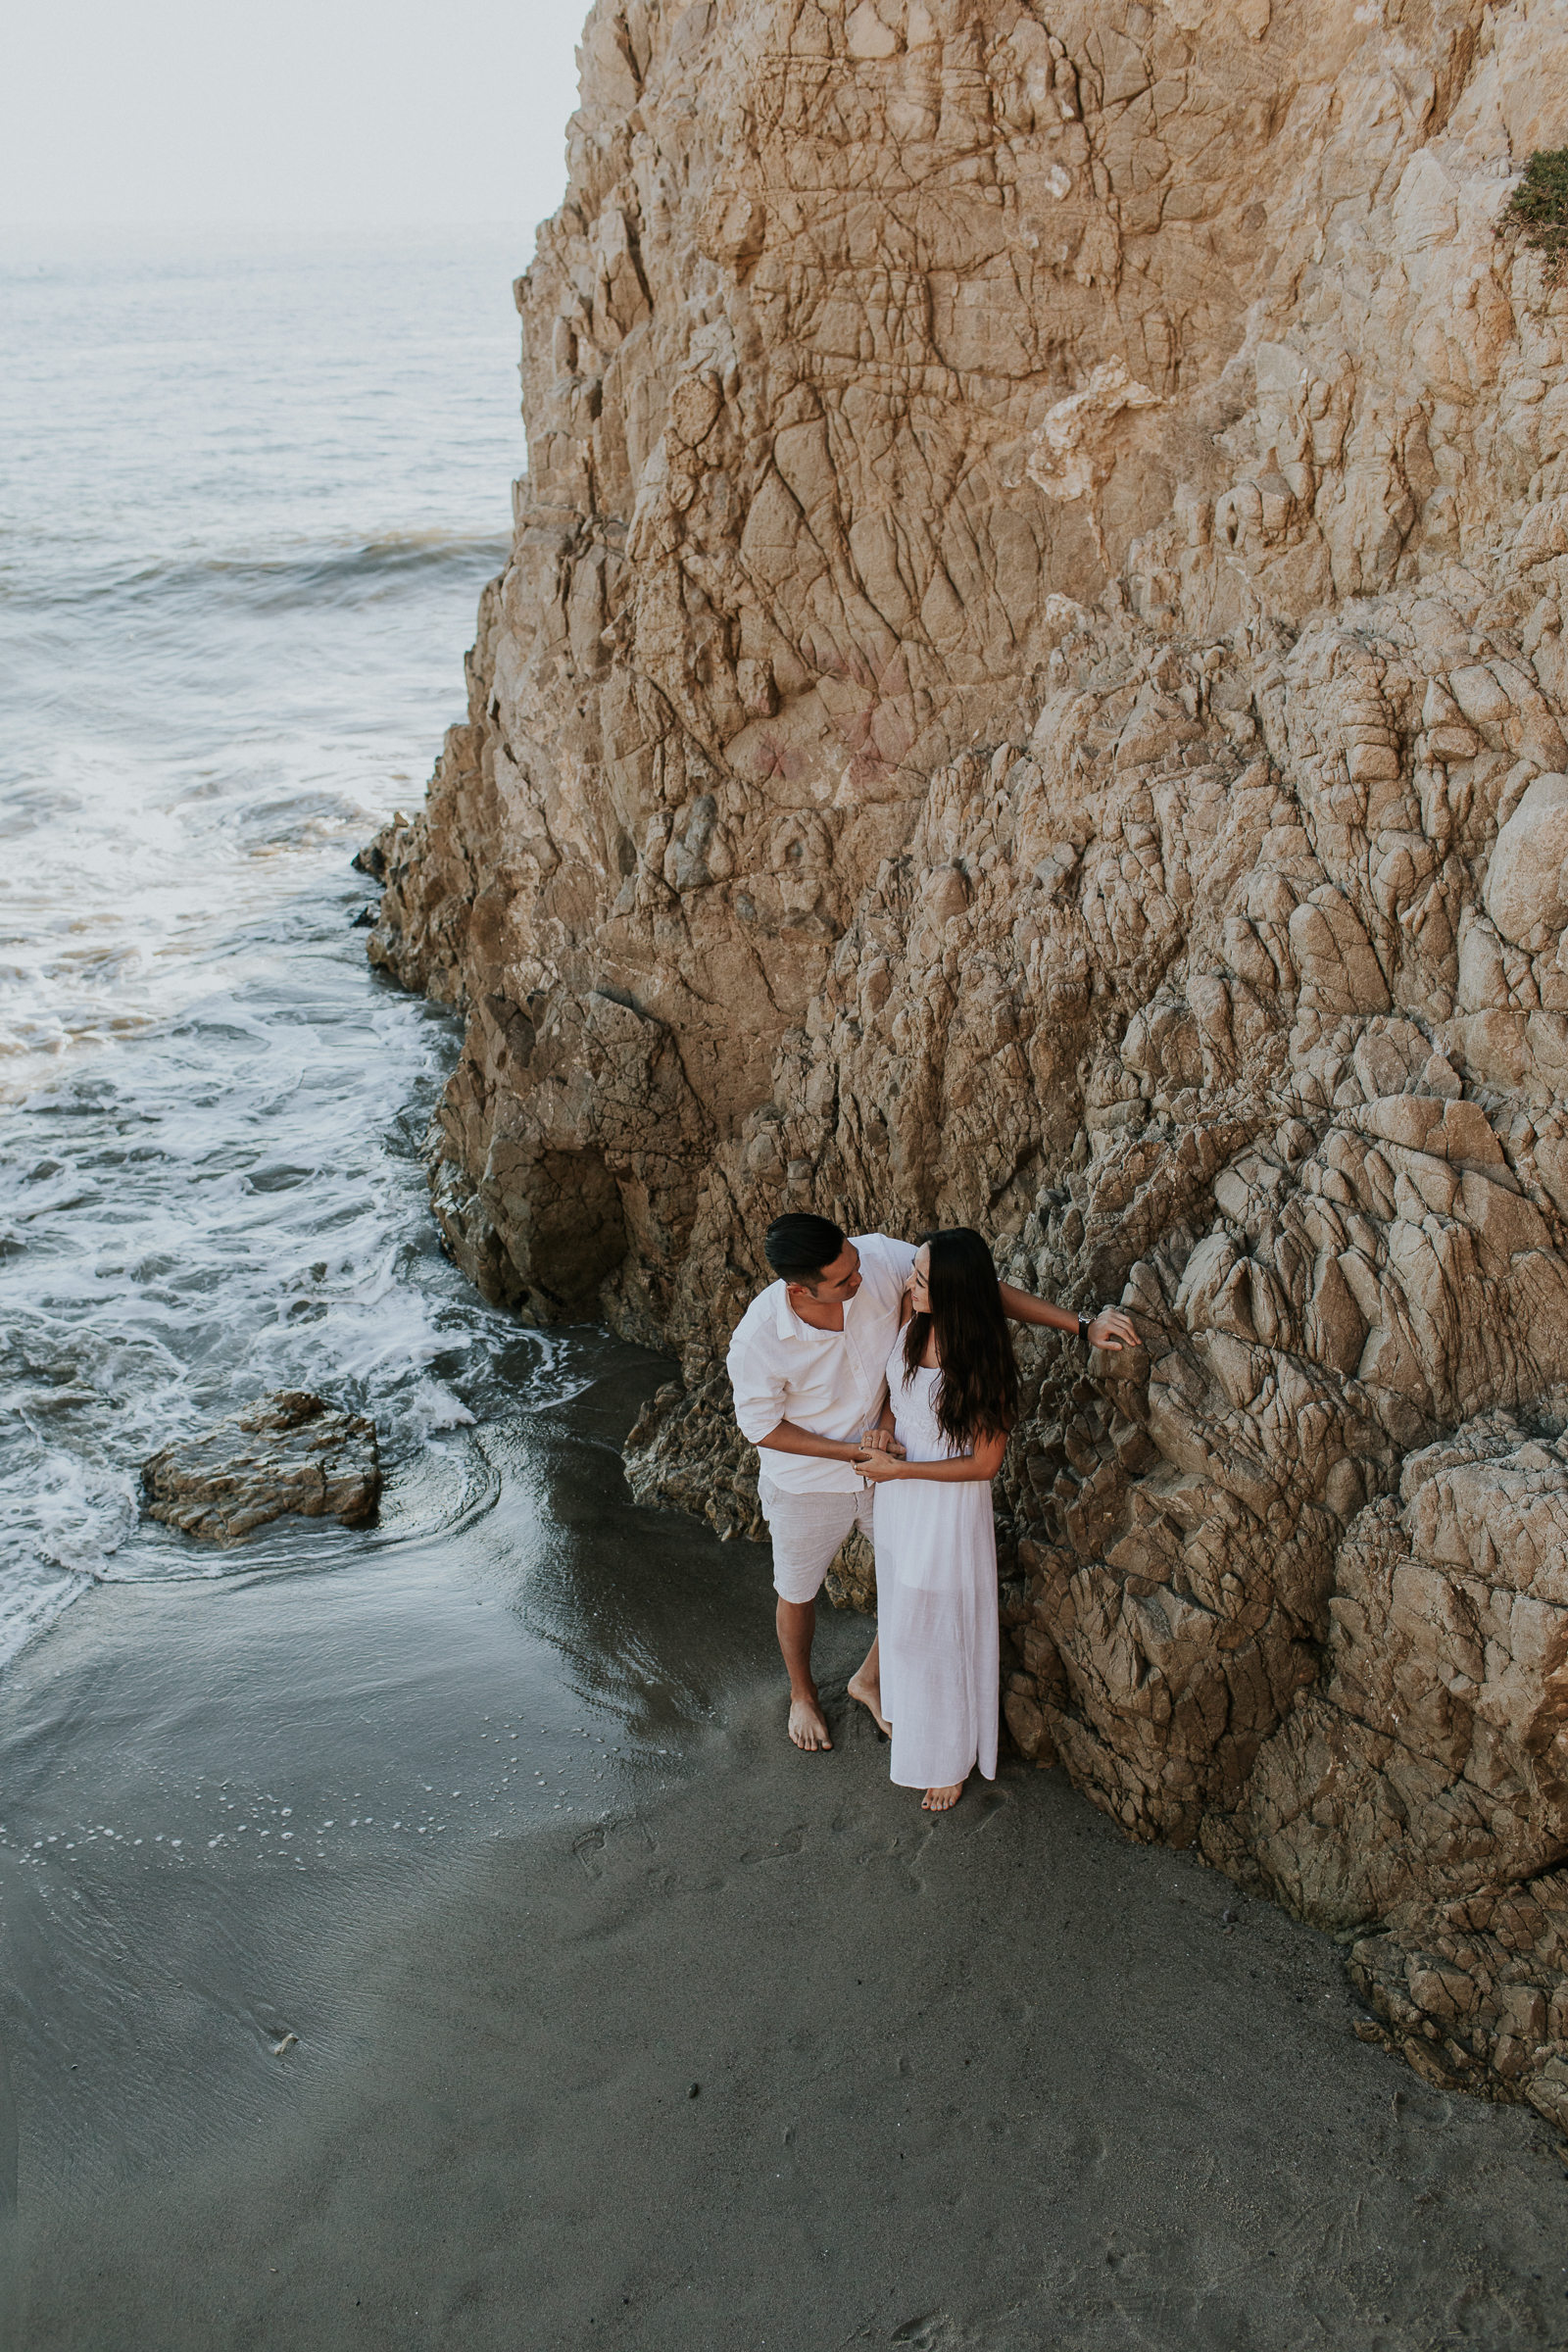 Malibu-El-Matador-State-Beach-Sunset-Engagement-Photos-Los-Angeles-Documentary-Wedding-Photographer-11.jpg